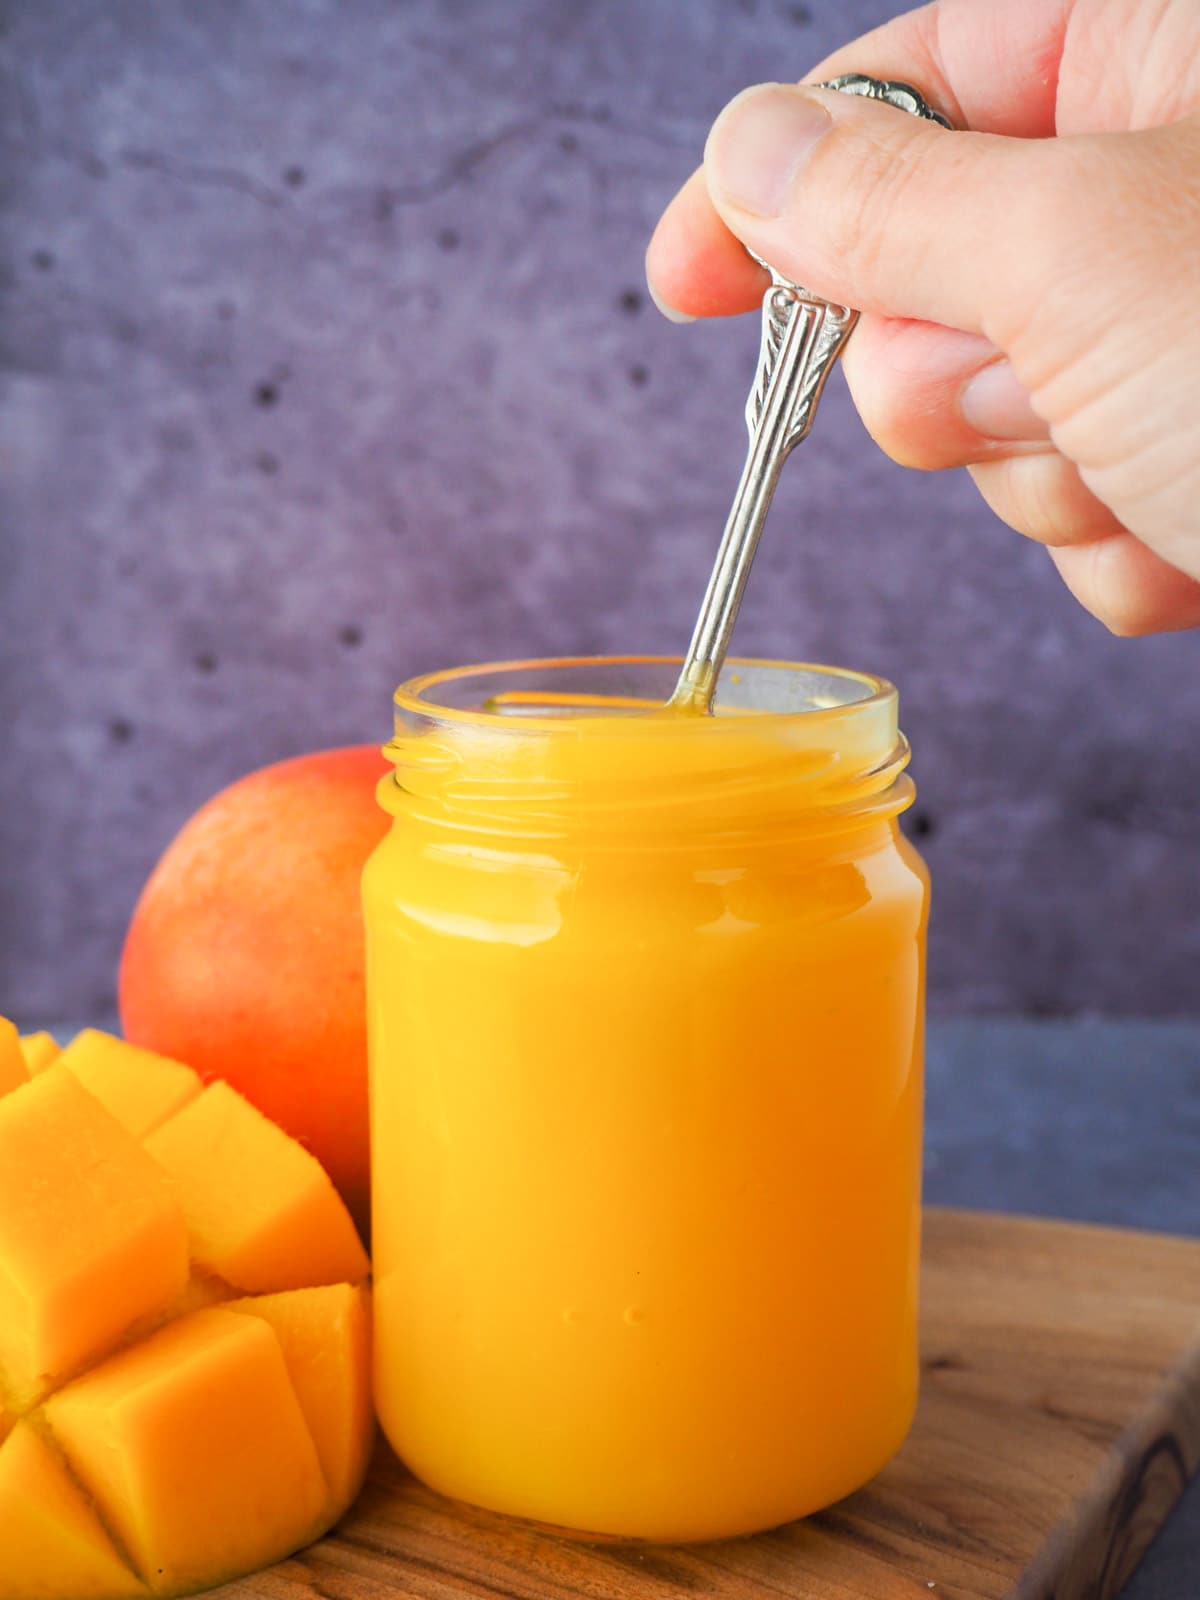 Glass jar of mango coulis with a hand holding a spoon in the jar, with fresh mango on the side.